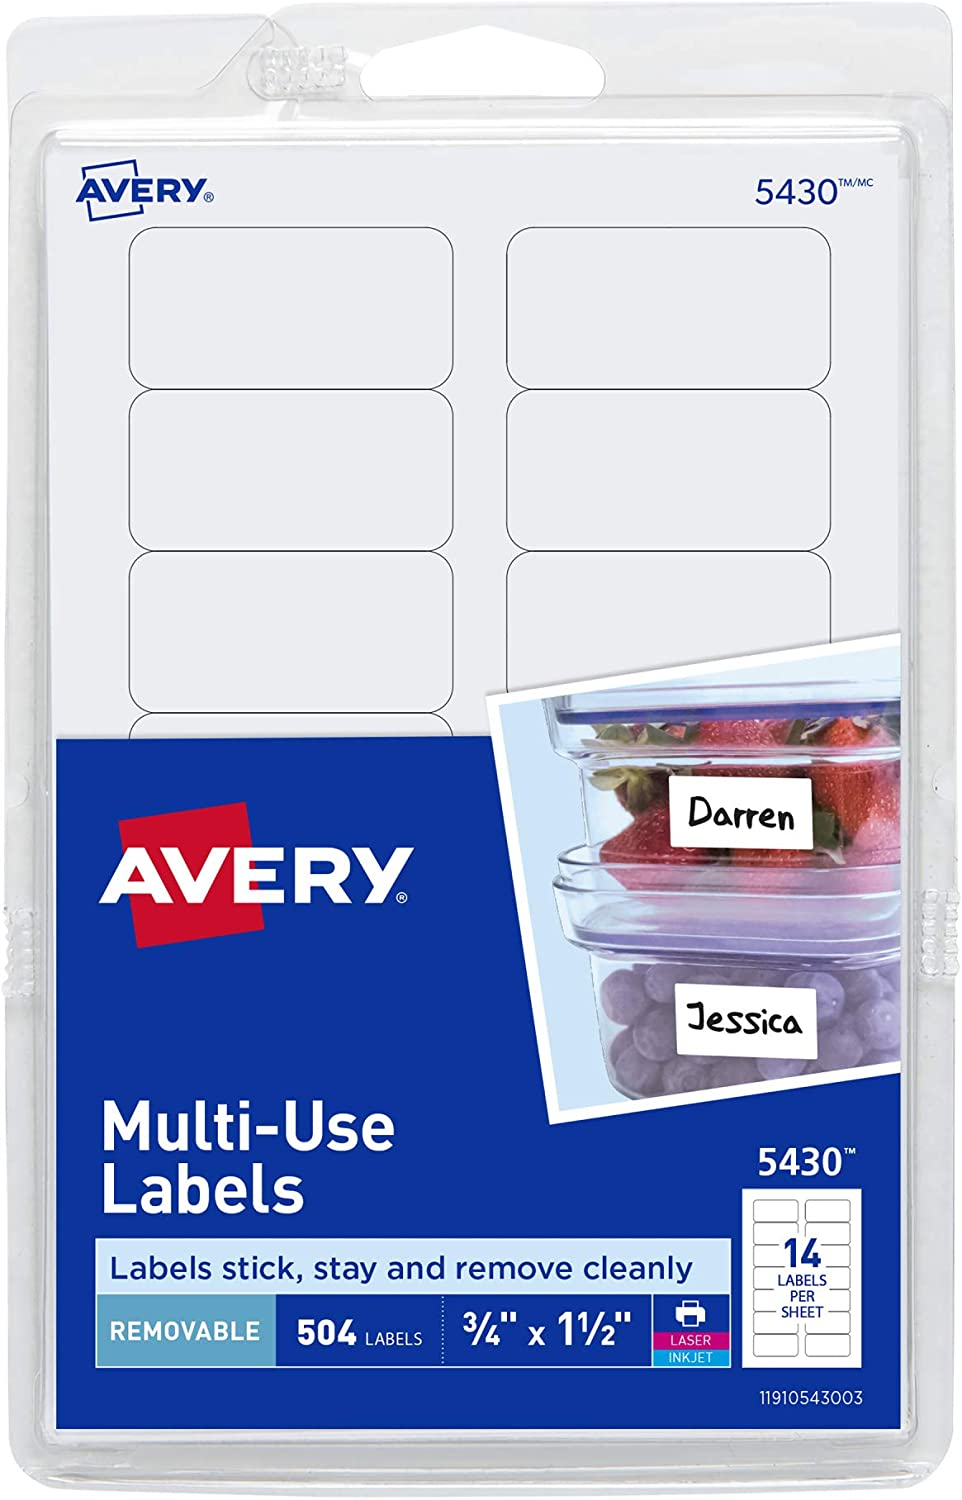 AVERY Removable Labels, Removable Adhesive, .75